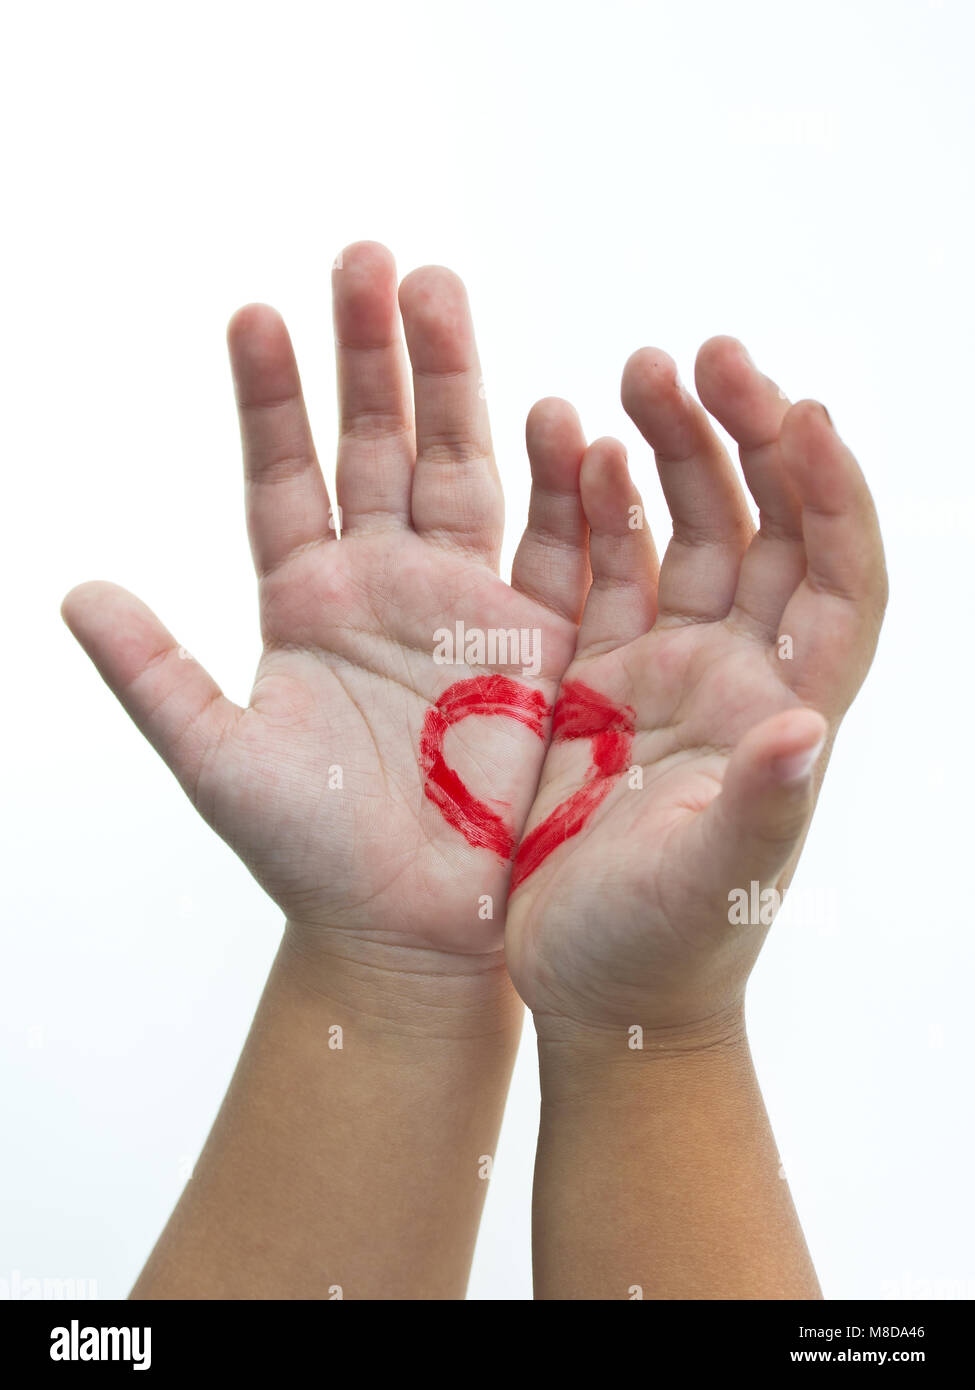 Heart in hands. Valentine's day, romance, love concept - Stock Image